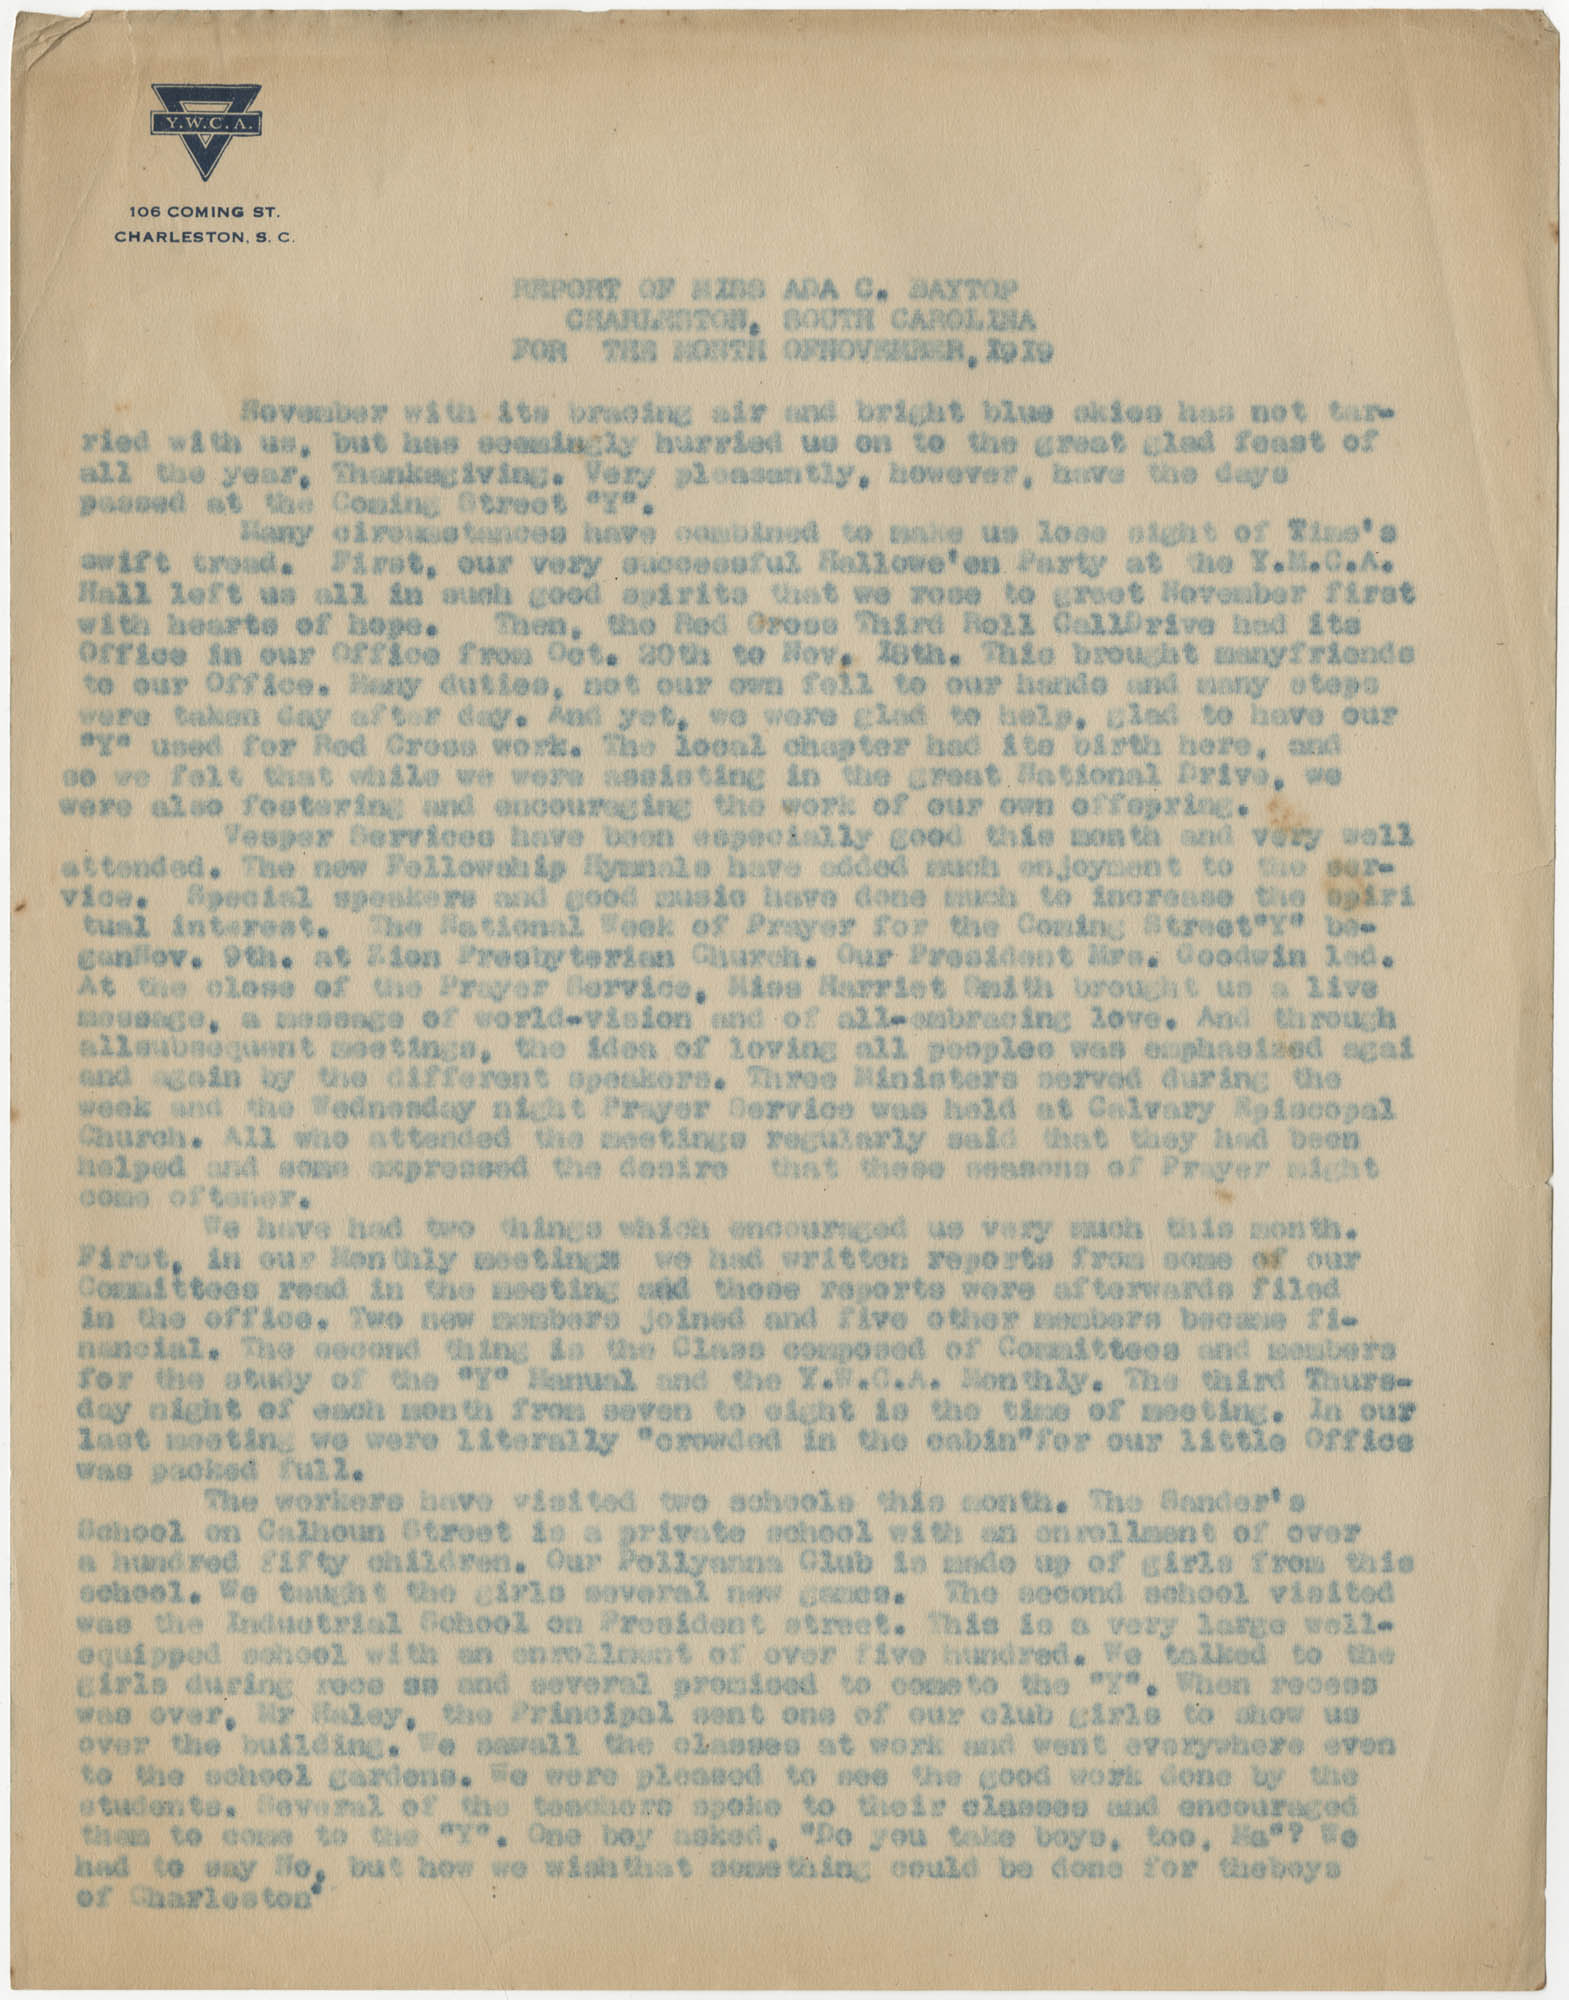 Coming Street Y.W.C.A. Report for November 1919